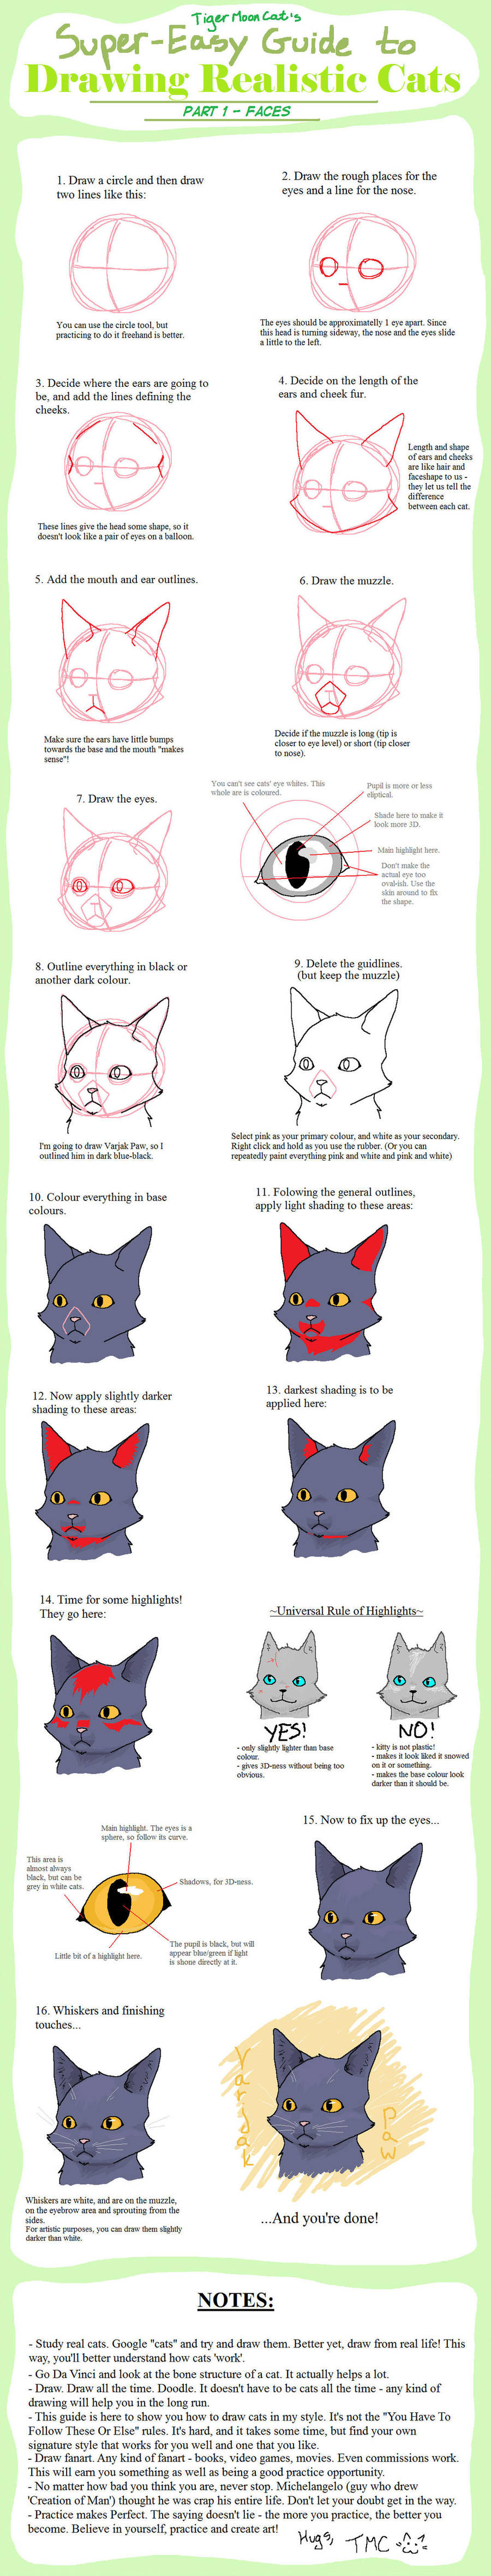 super easy guide to drawing realistic cats faces by tigermooncat